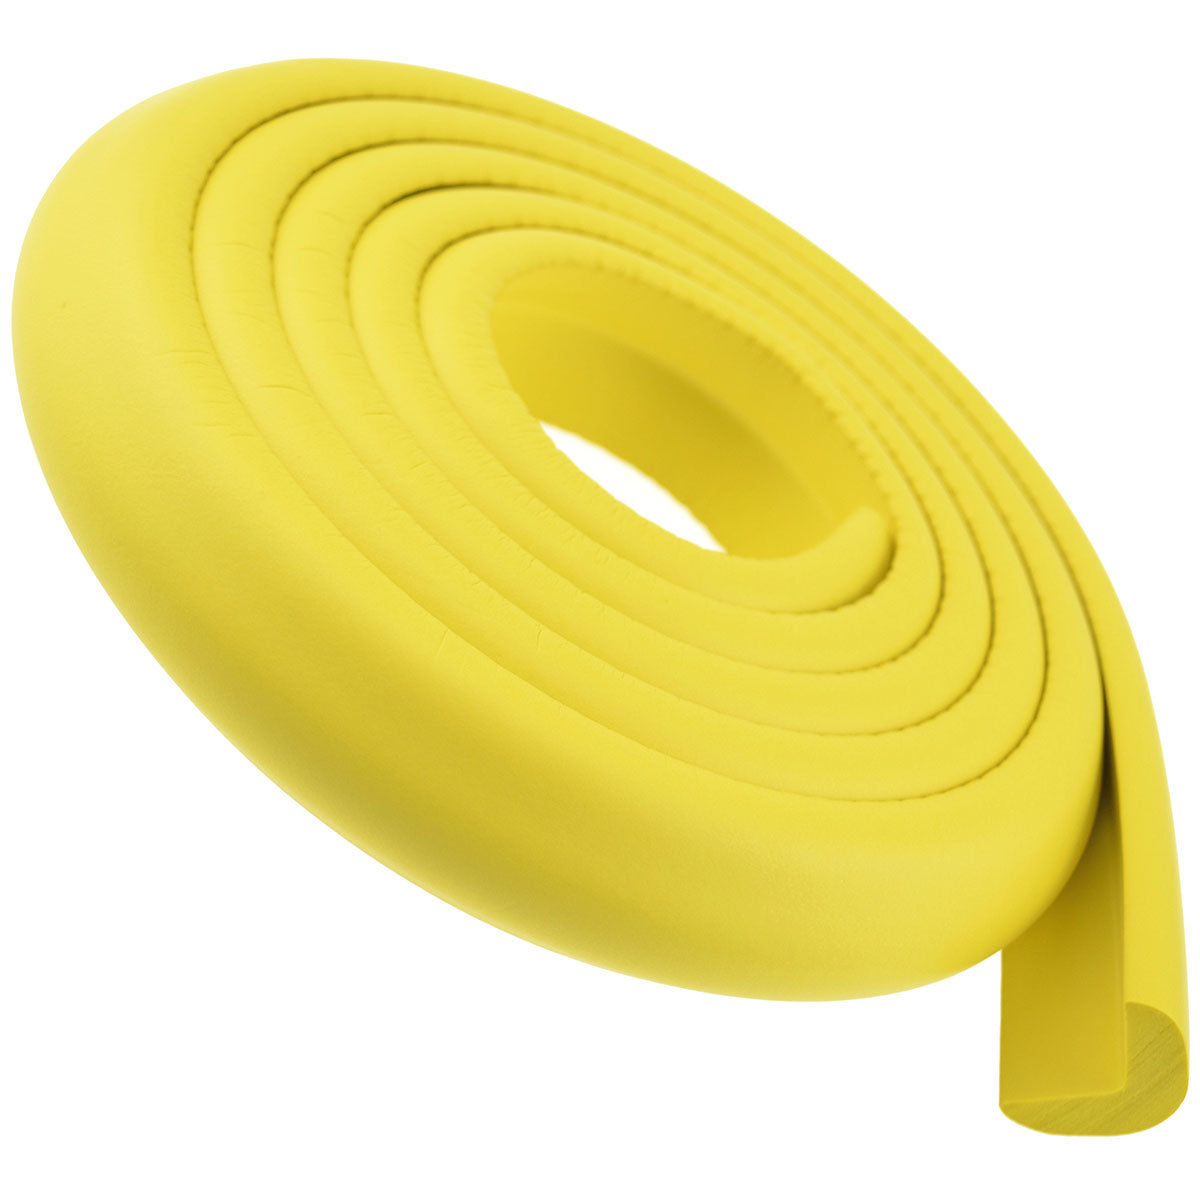 1 Roll Yellow Standard L-Shaped Foam Edge Protector 78.7 inches (2 meters)